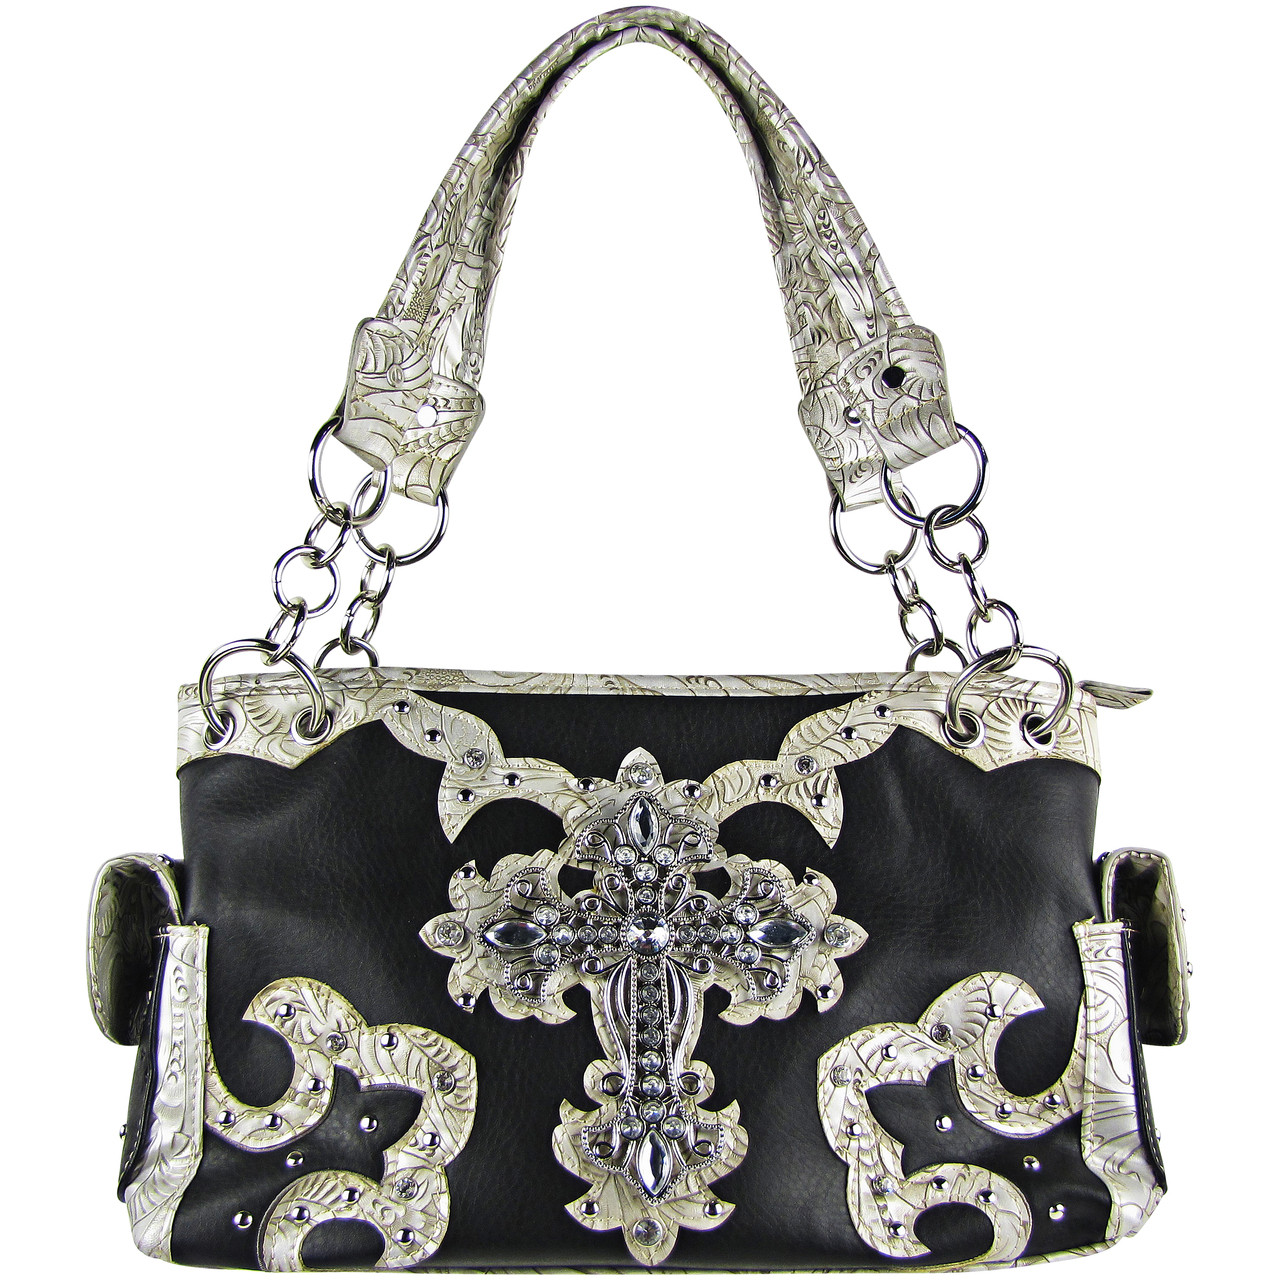 BLACK WESTERN STUDDED RHINESTONE CROSS DESIGN LOOK SHOULDER HANDBAG HB1-KW15RBLK